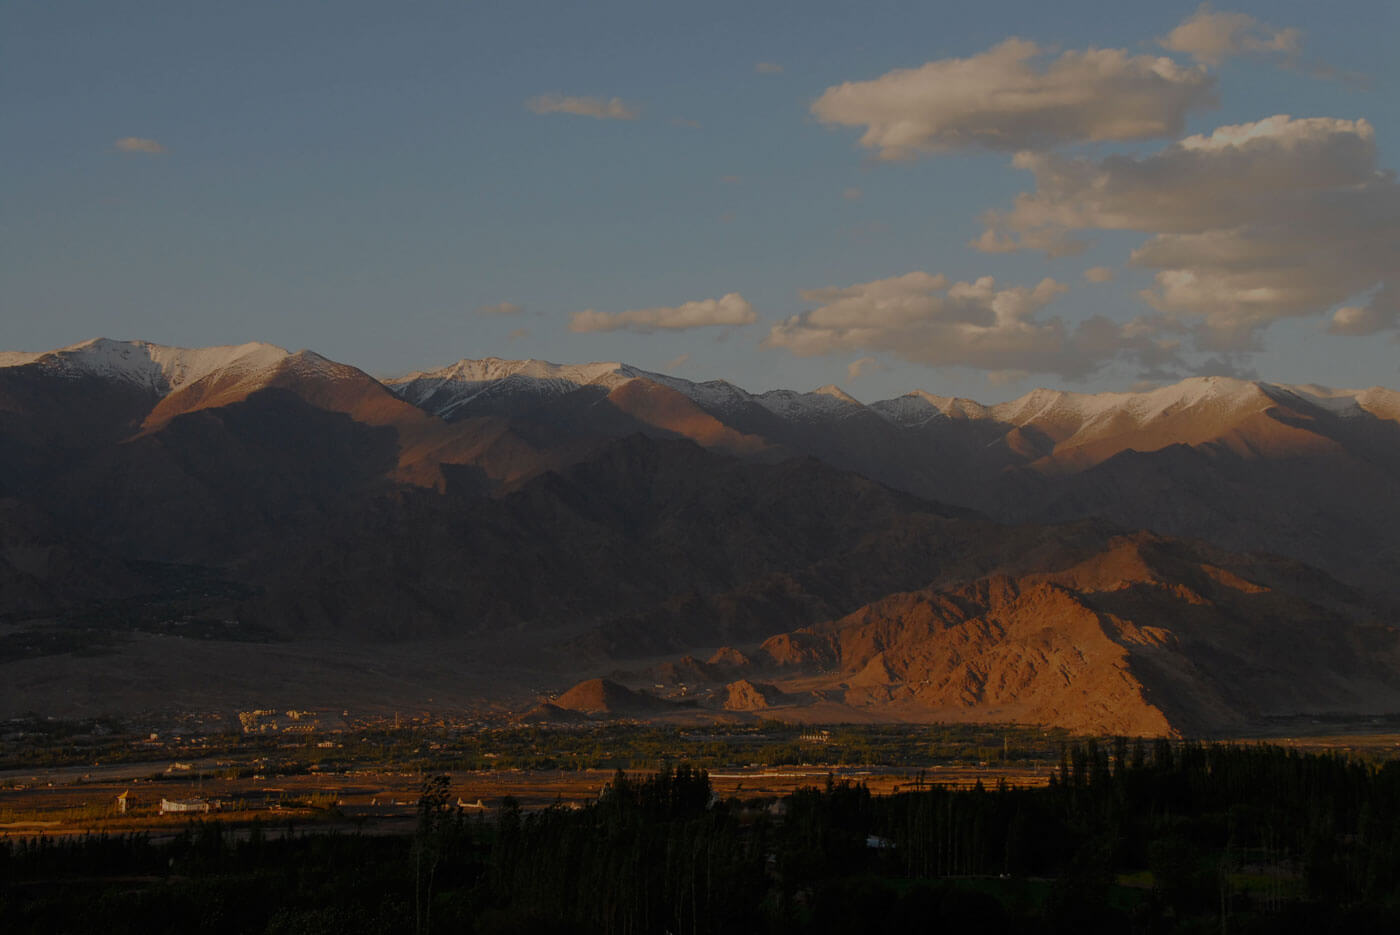 Sunset over the town of Leh, the capital of Ladakh, 1 hour flight from New Delhi